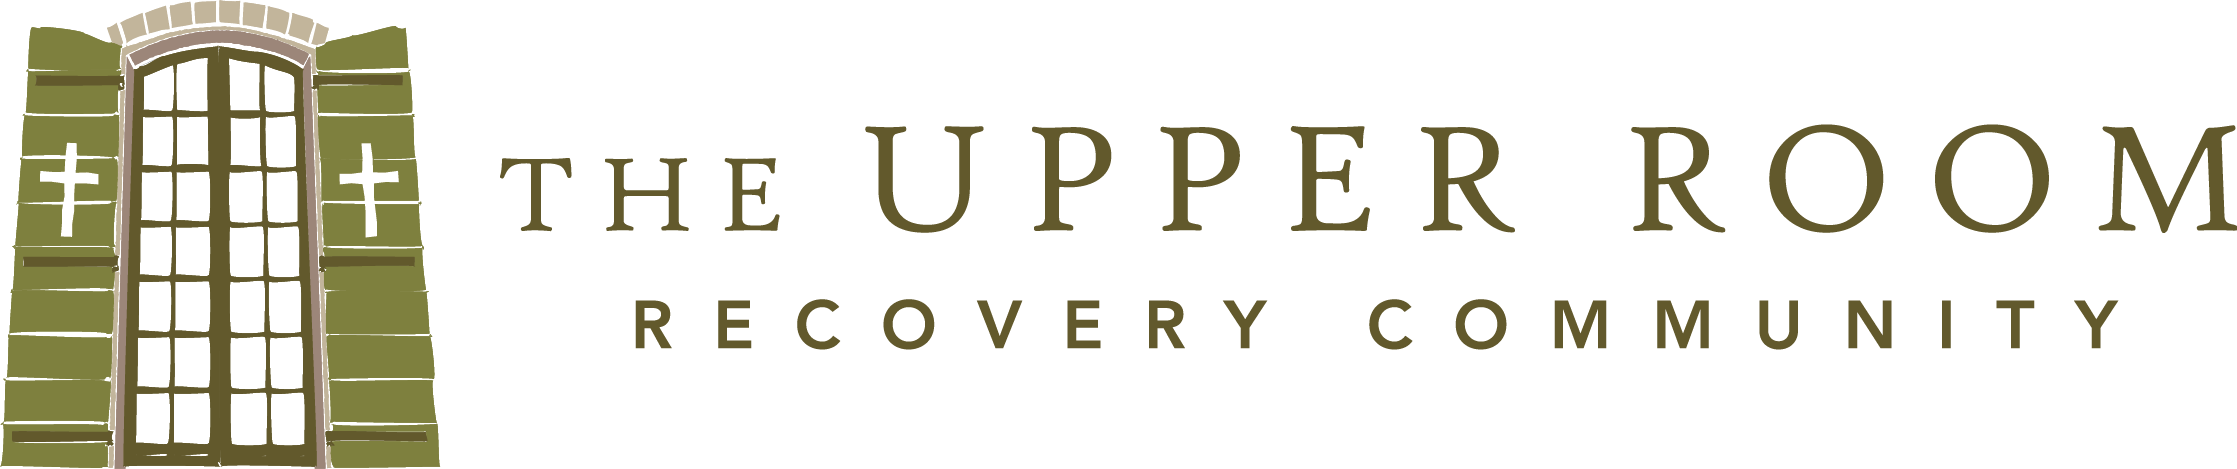 The Upper Room Recovery Community Inc.